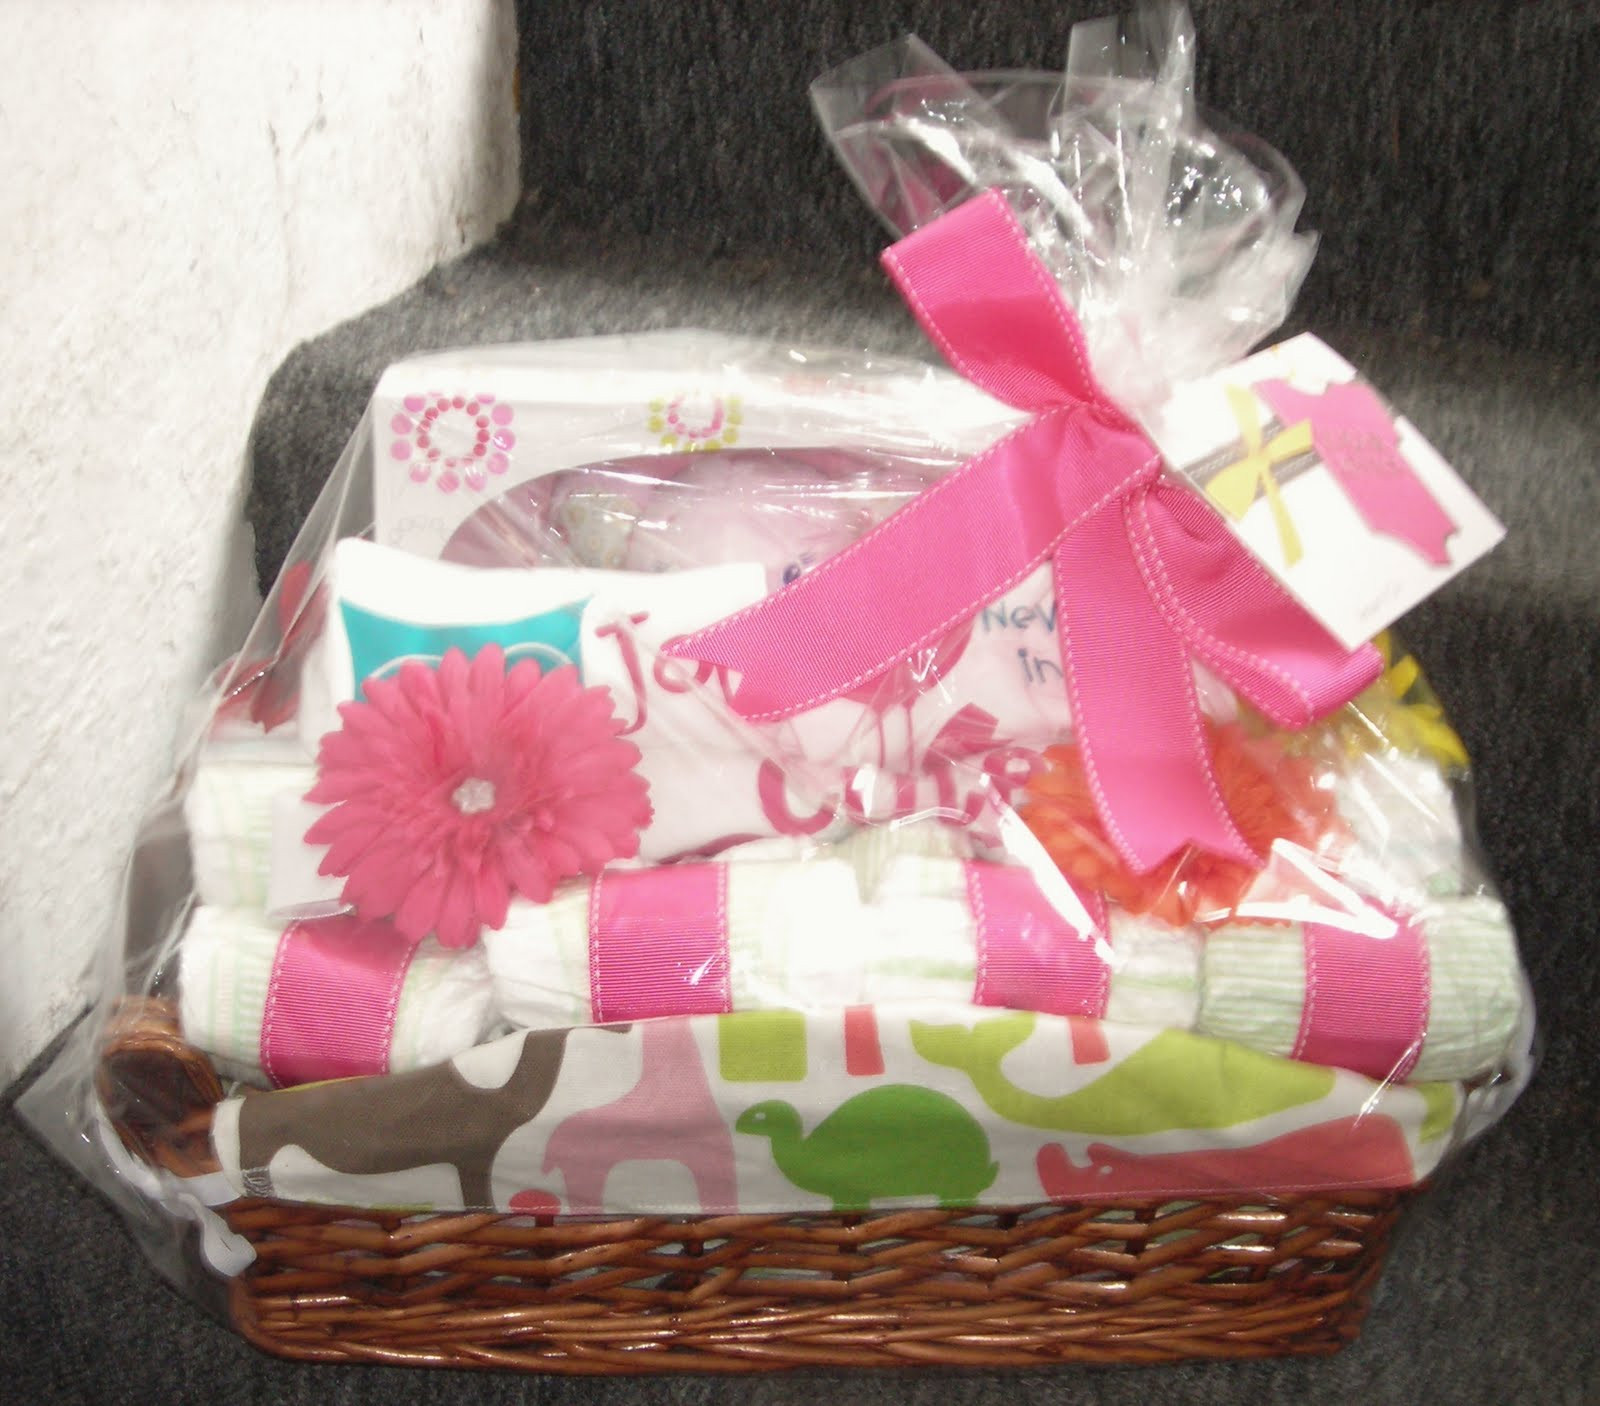 Baby Shower Gift Ideas For A Girl  Life in the Motherhood Baby Shower Gift Basket For a